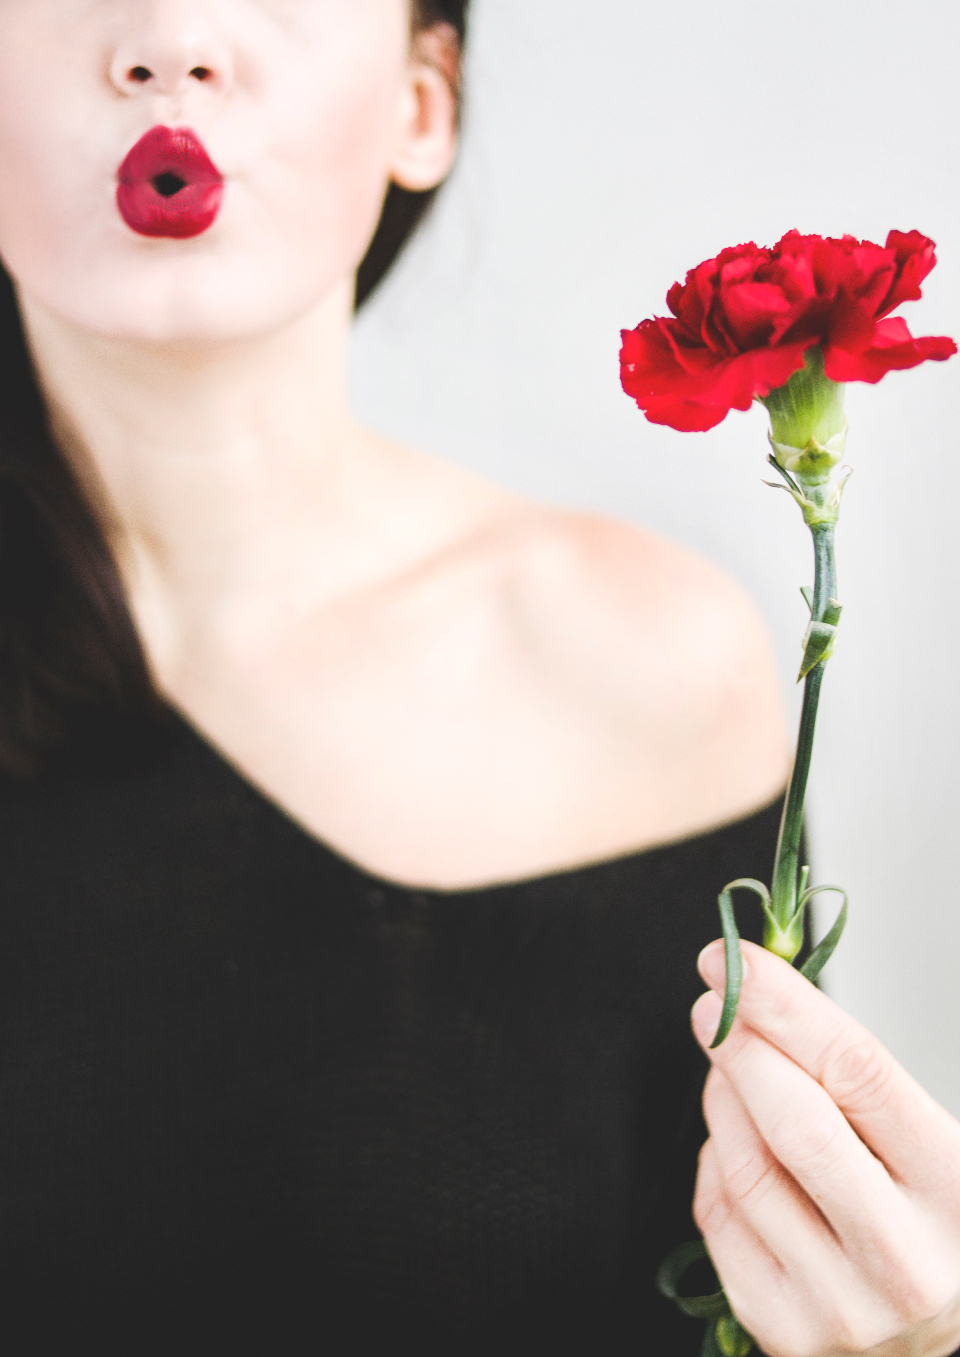 woman blowing kiss flower red female people girl black dress fashion red flower nature red lips lipstick lips